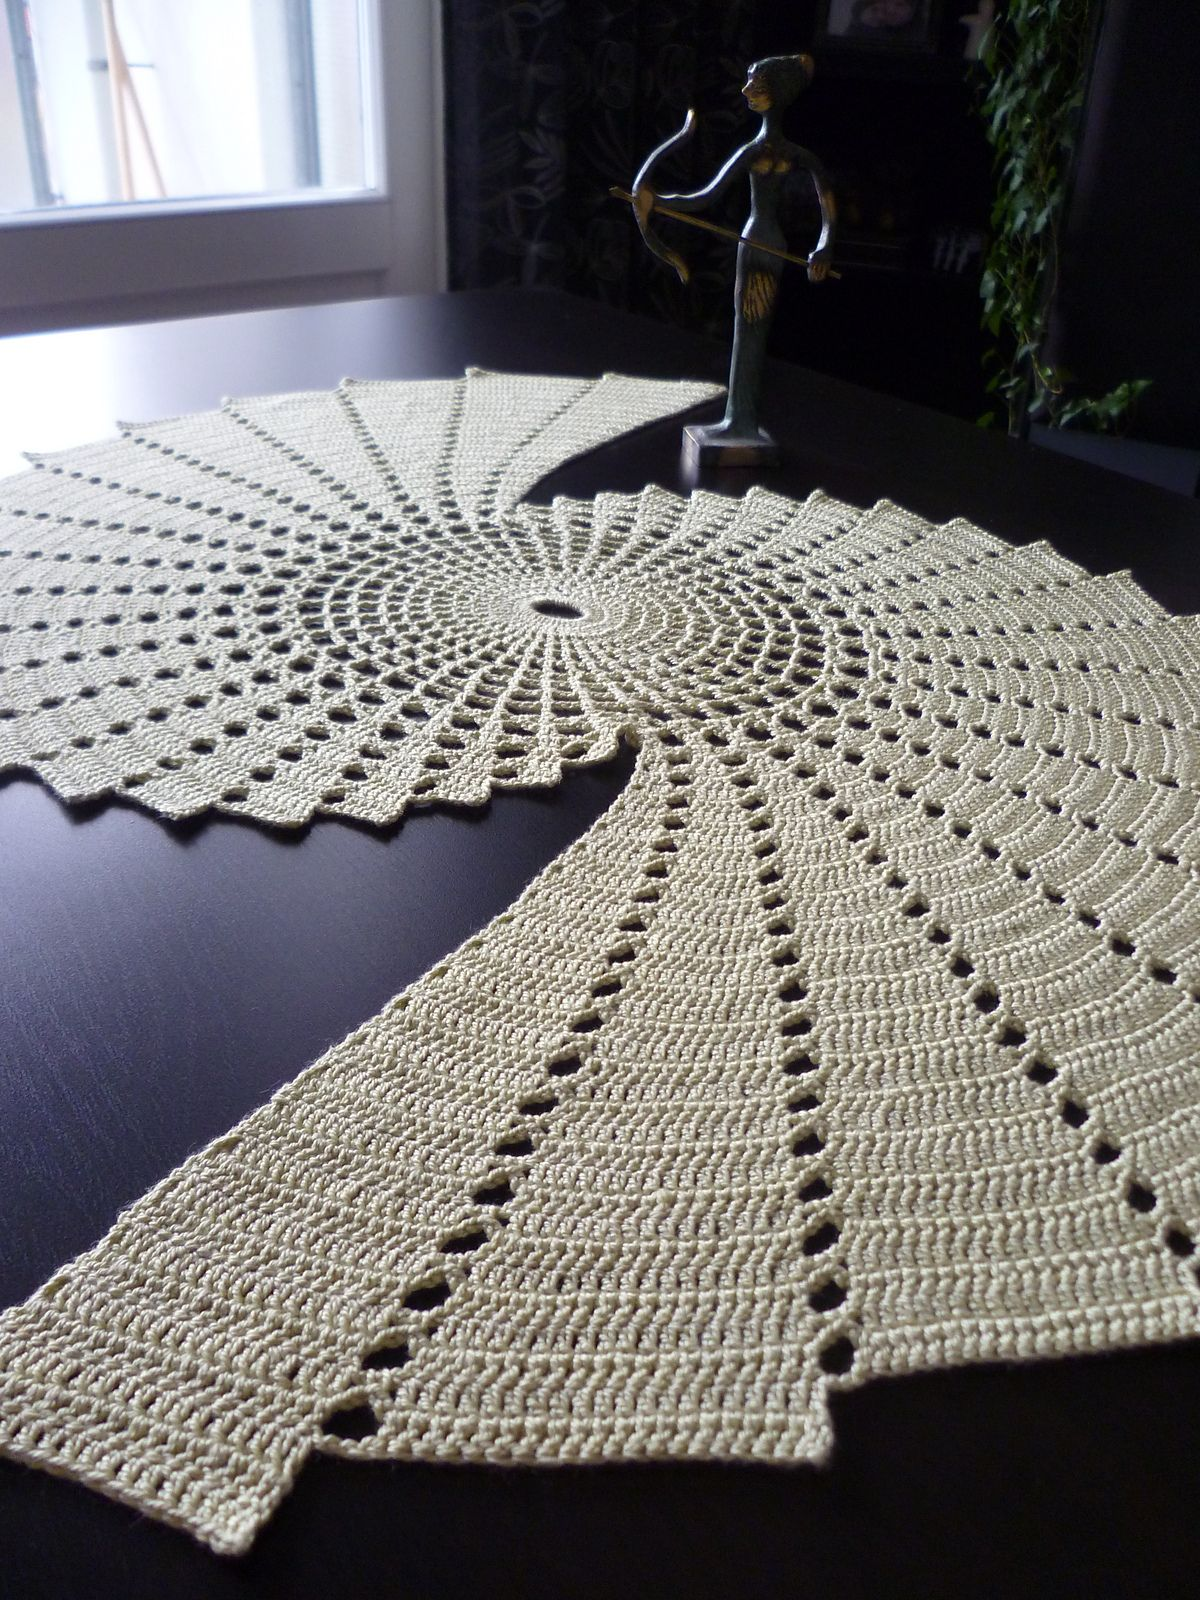 Fractal pattern by Essi Varis | Ravelry, Crochet and Crochet doilies